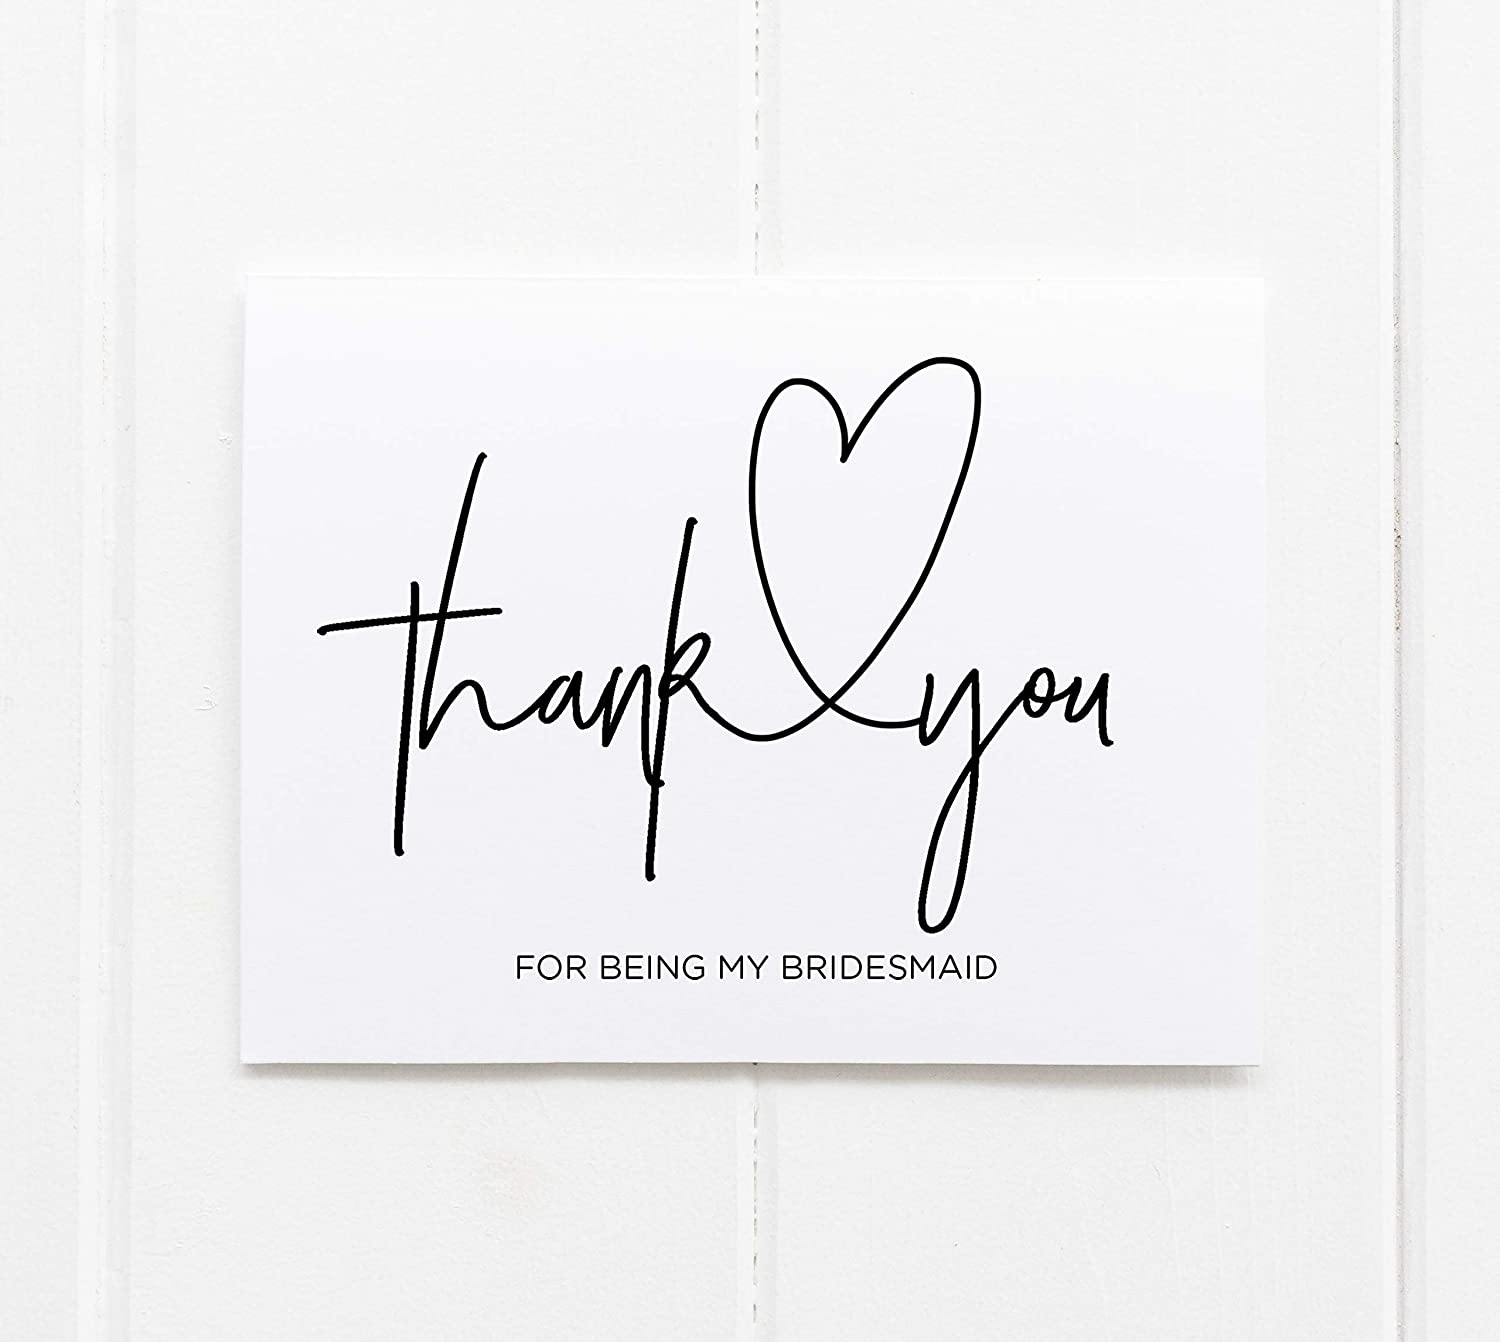 To My Bridesmaid Wedding Card 5x7 Printable To my Bridesmaid Wedding Card PLP -006 Wedding Thank You Card Floral Thank You Card